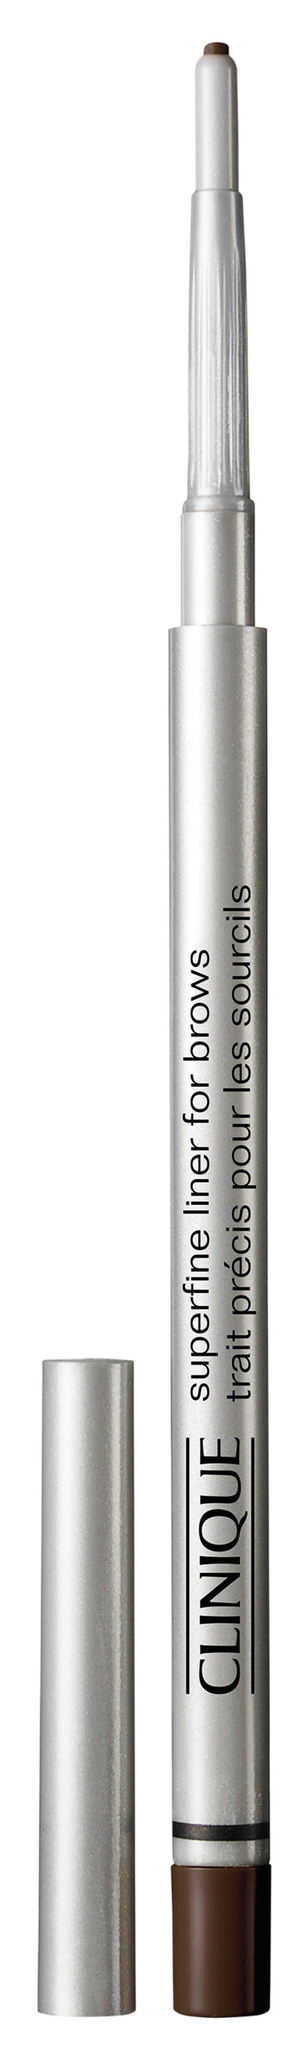 Clinique Superfine Liner For Brows, deep brown